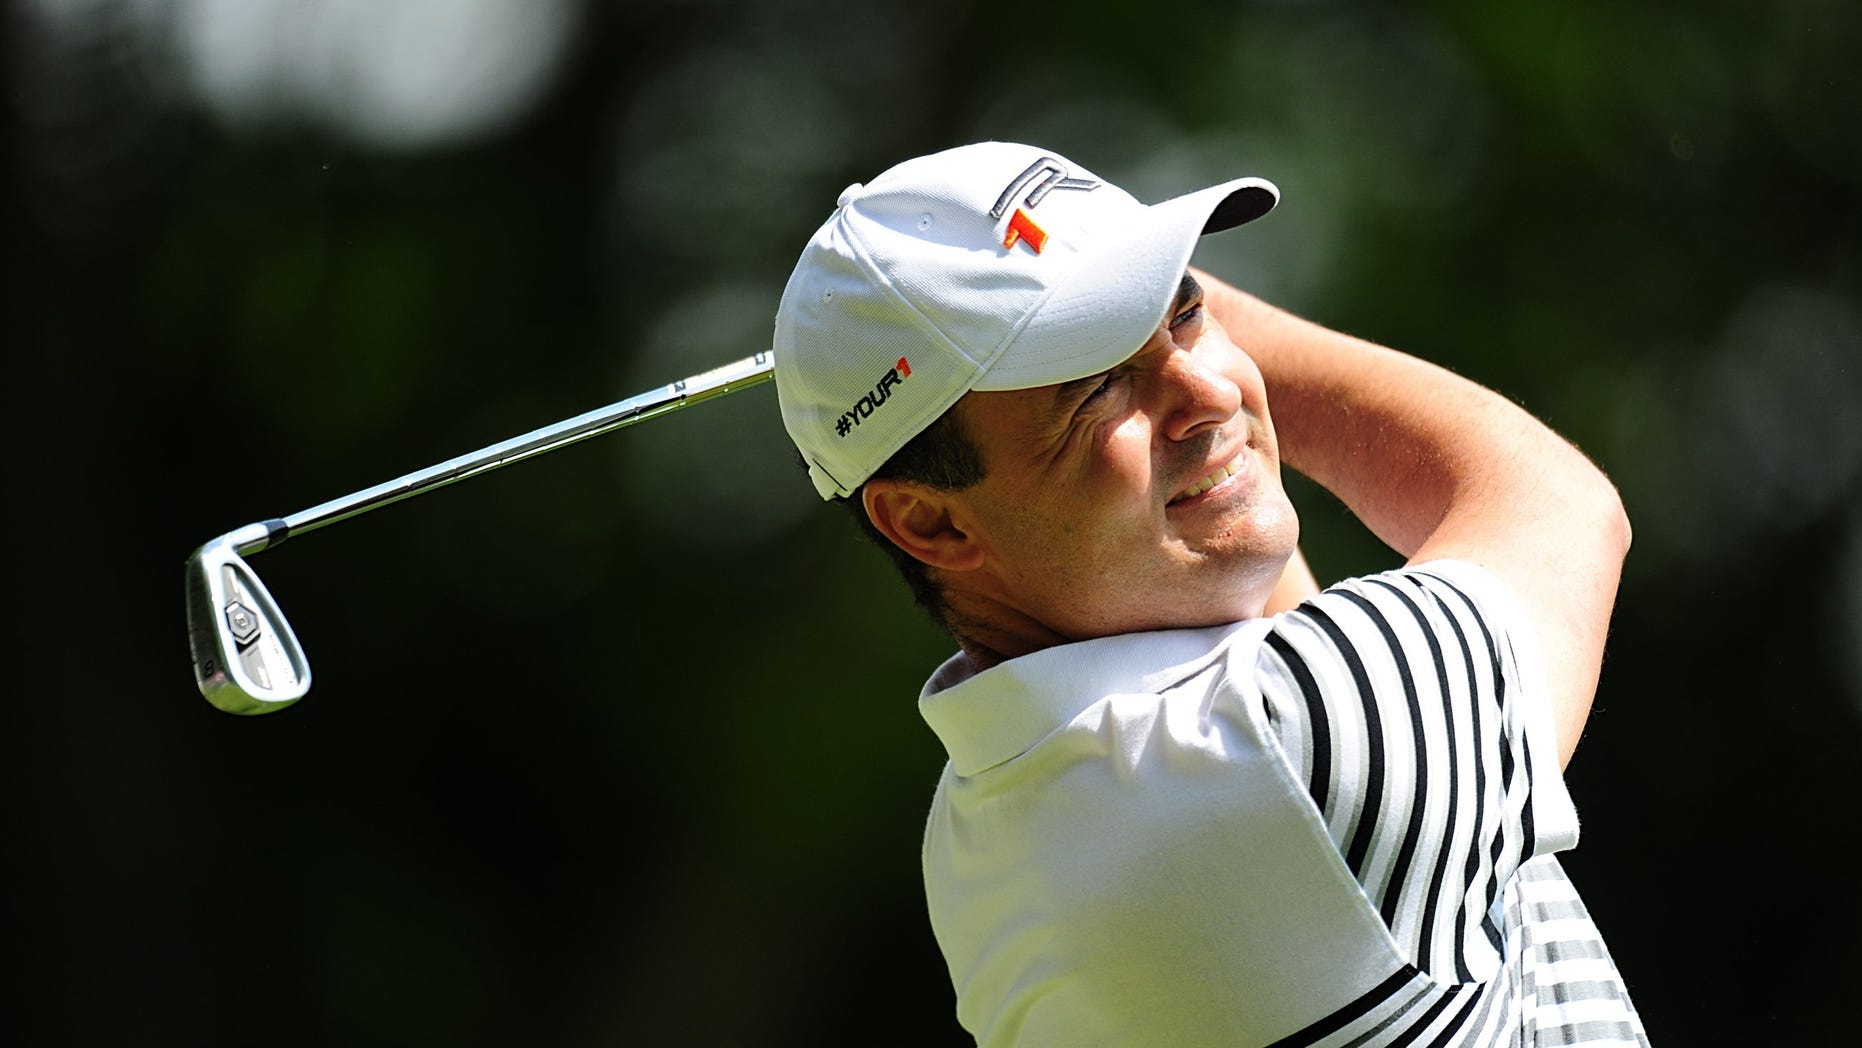 England's Simon Khan in action during round four on day four of the PGA Championship at the Wentworth Club, in Virginia Water, England, Sunday May 26, 2013. (AP Photo/Adam Davy, PA) UNITED KINGDOM OUT - NO SALES - NO ARCHIVES